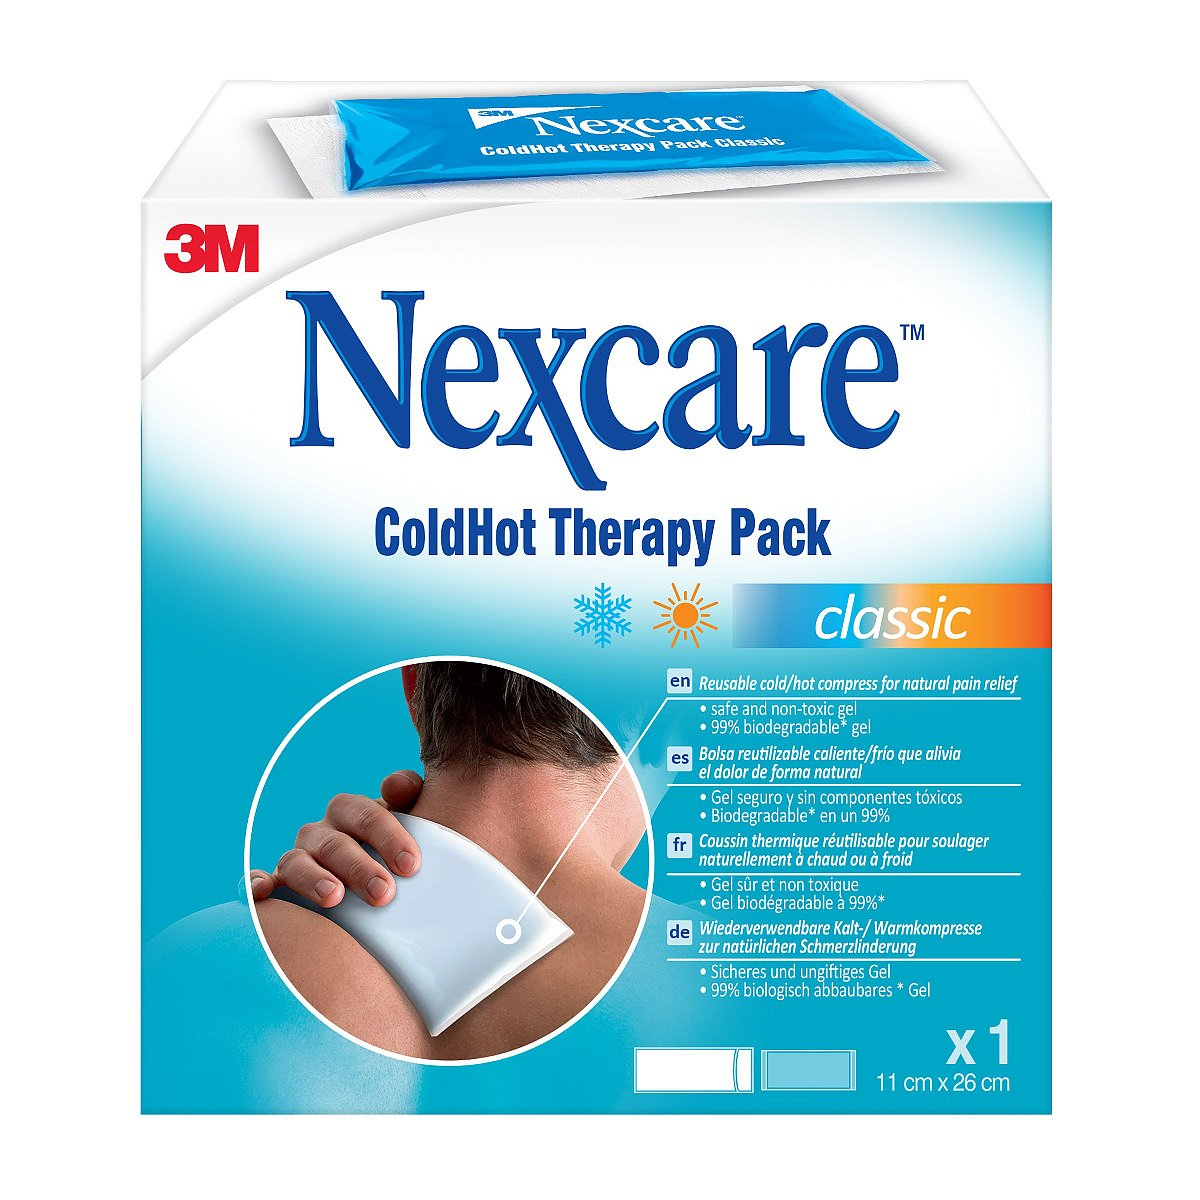 3M Nexcare ColdHot Therapy Pack Classic 11x26 cm gelový obklad 1 ks